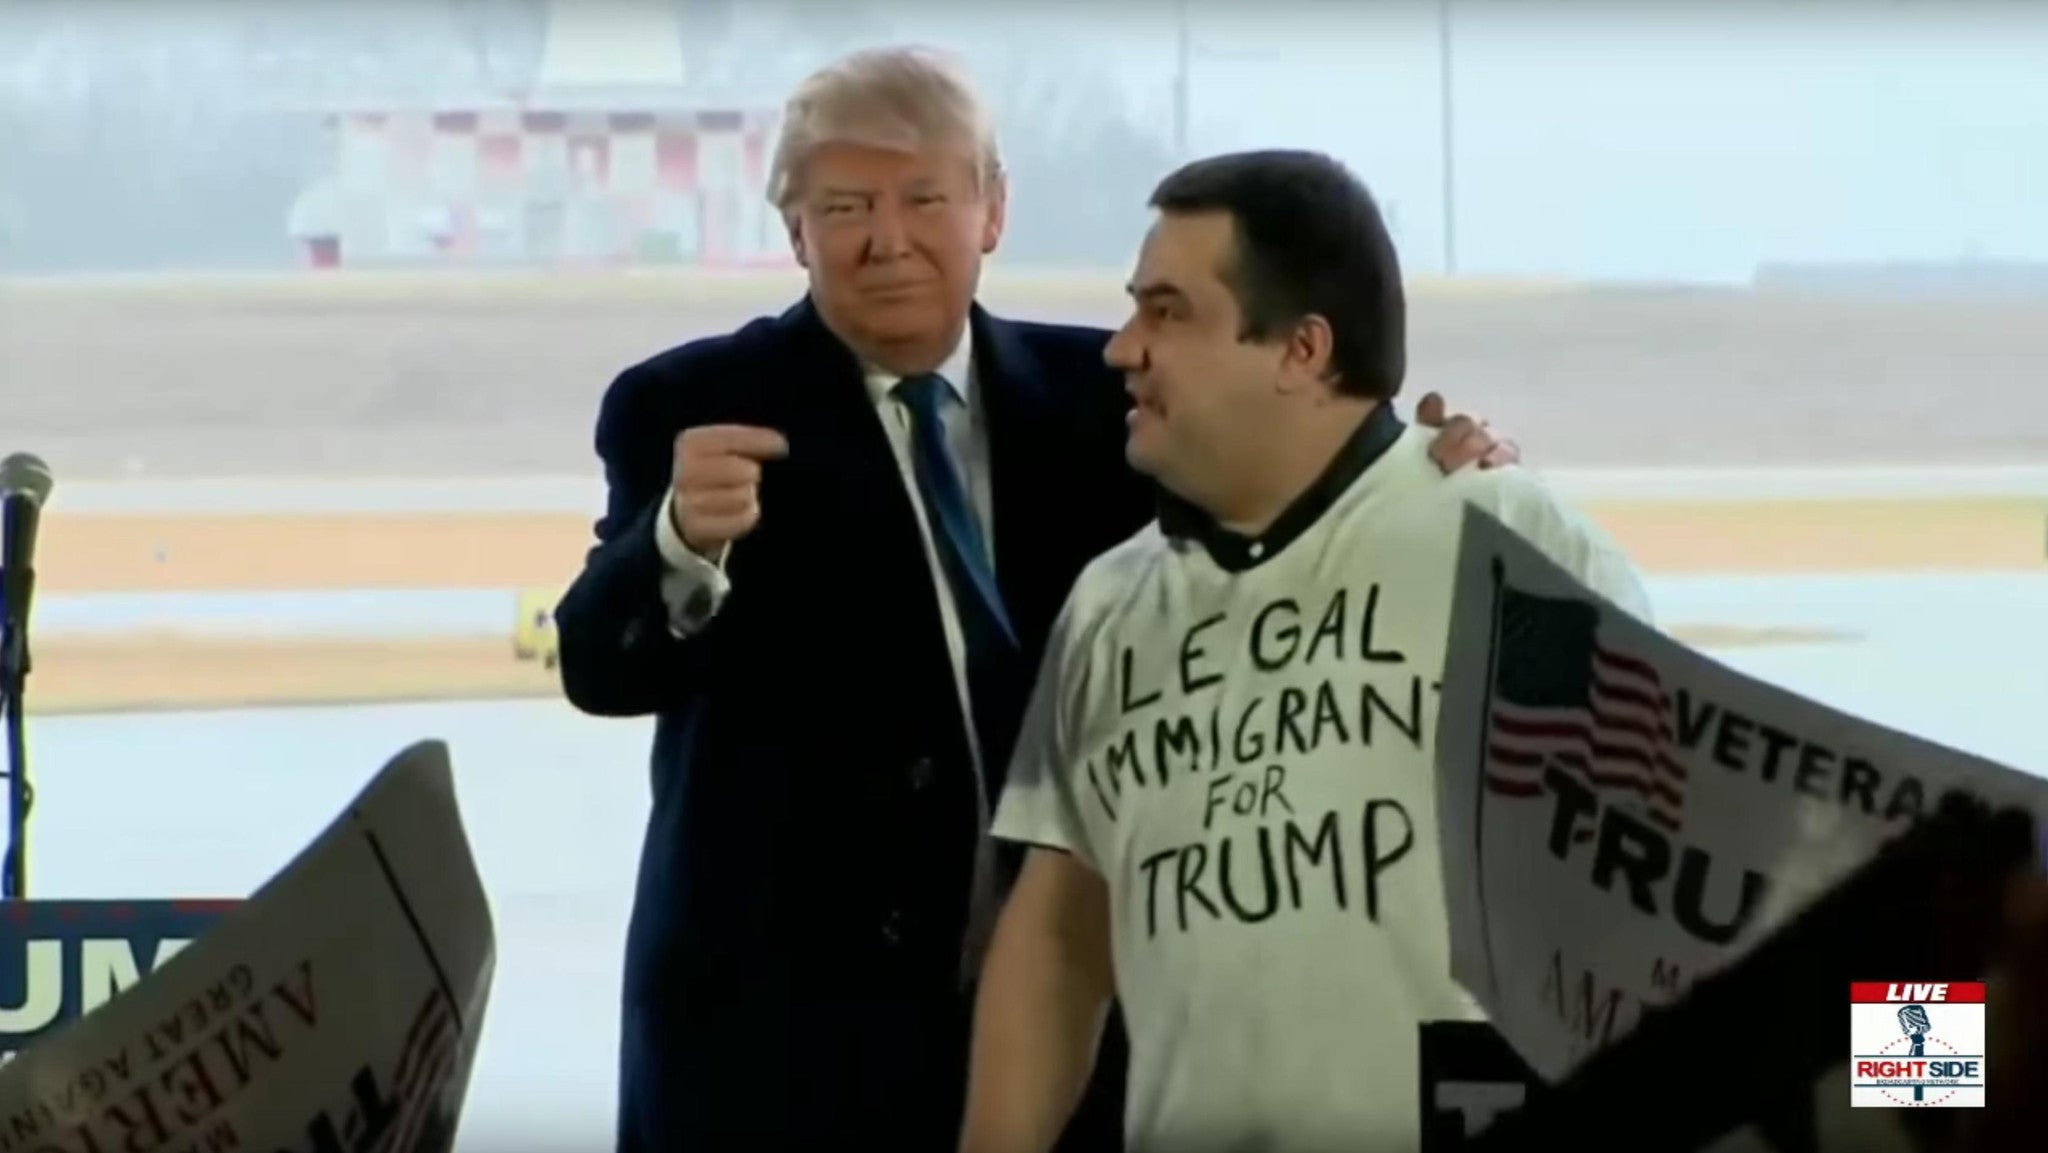 WATCH: Donald Trump invites LEGAL immigrant on stage